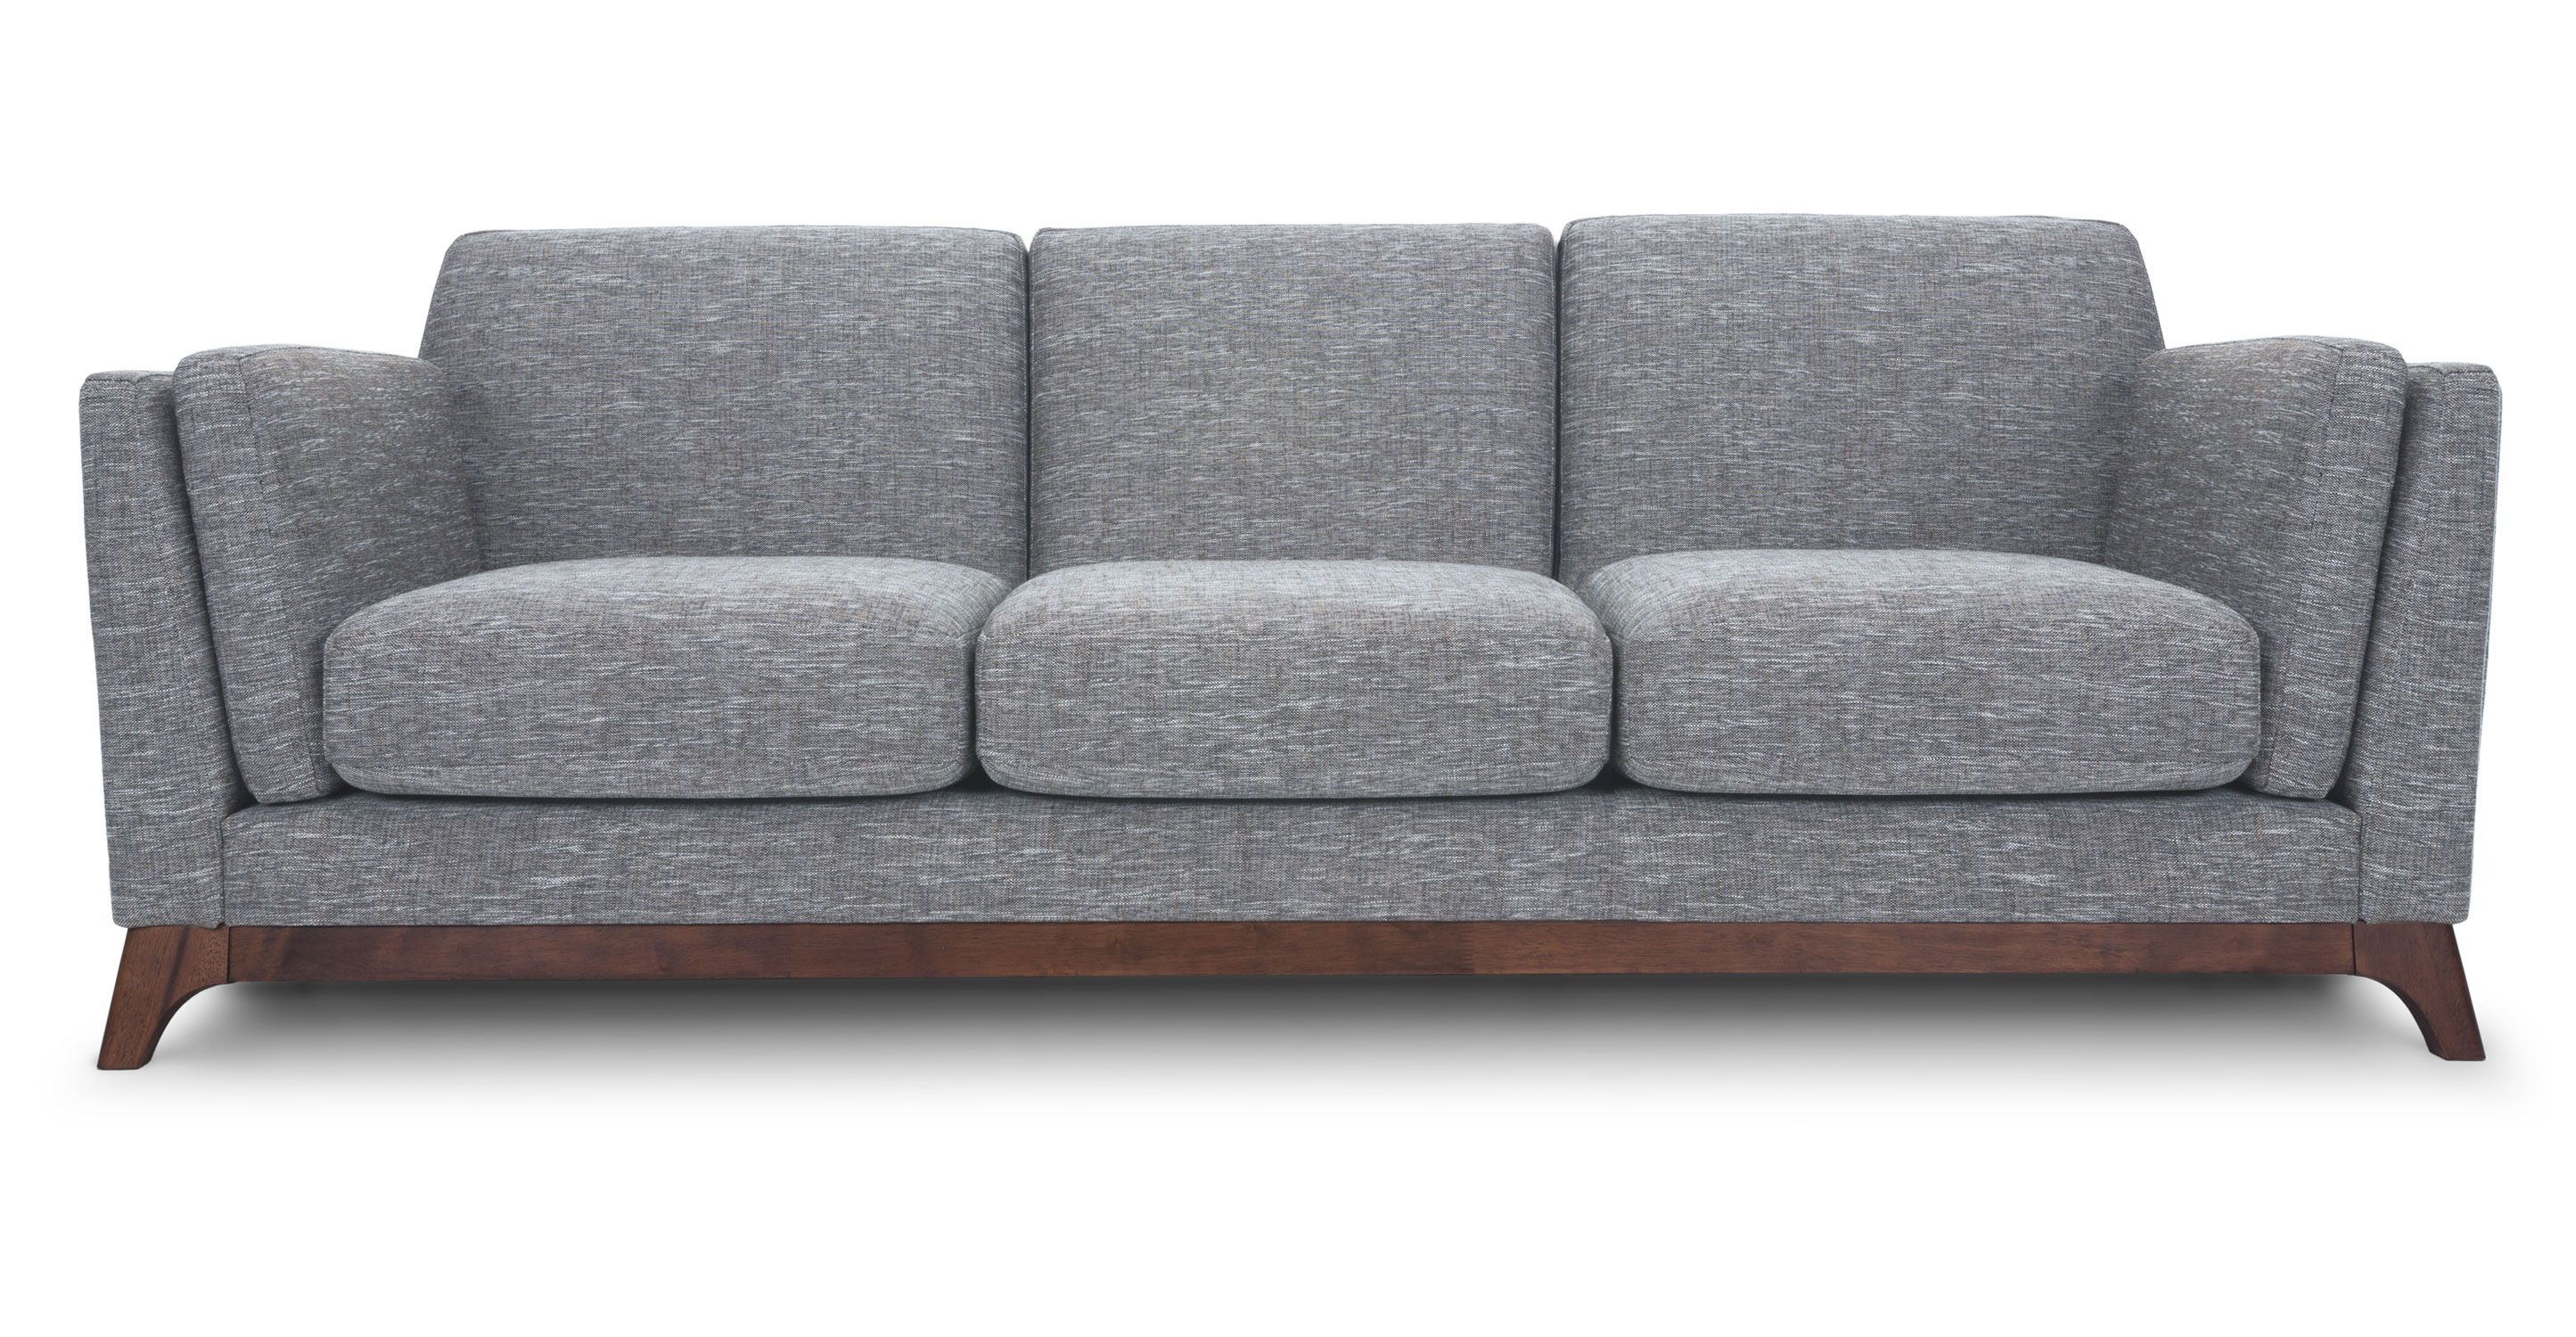 Gray sofa 3 seater with solid wood legs article ceni for Modern loveseat